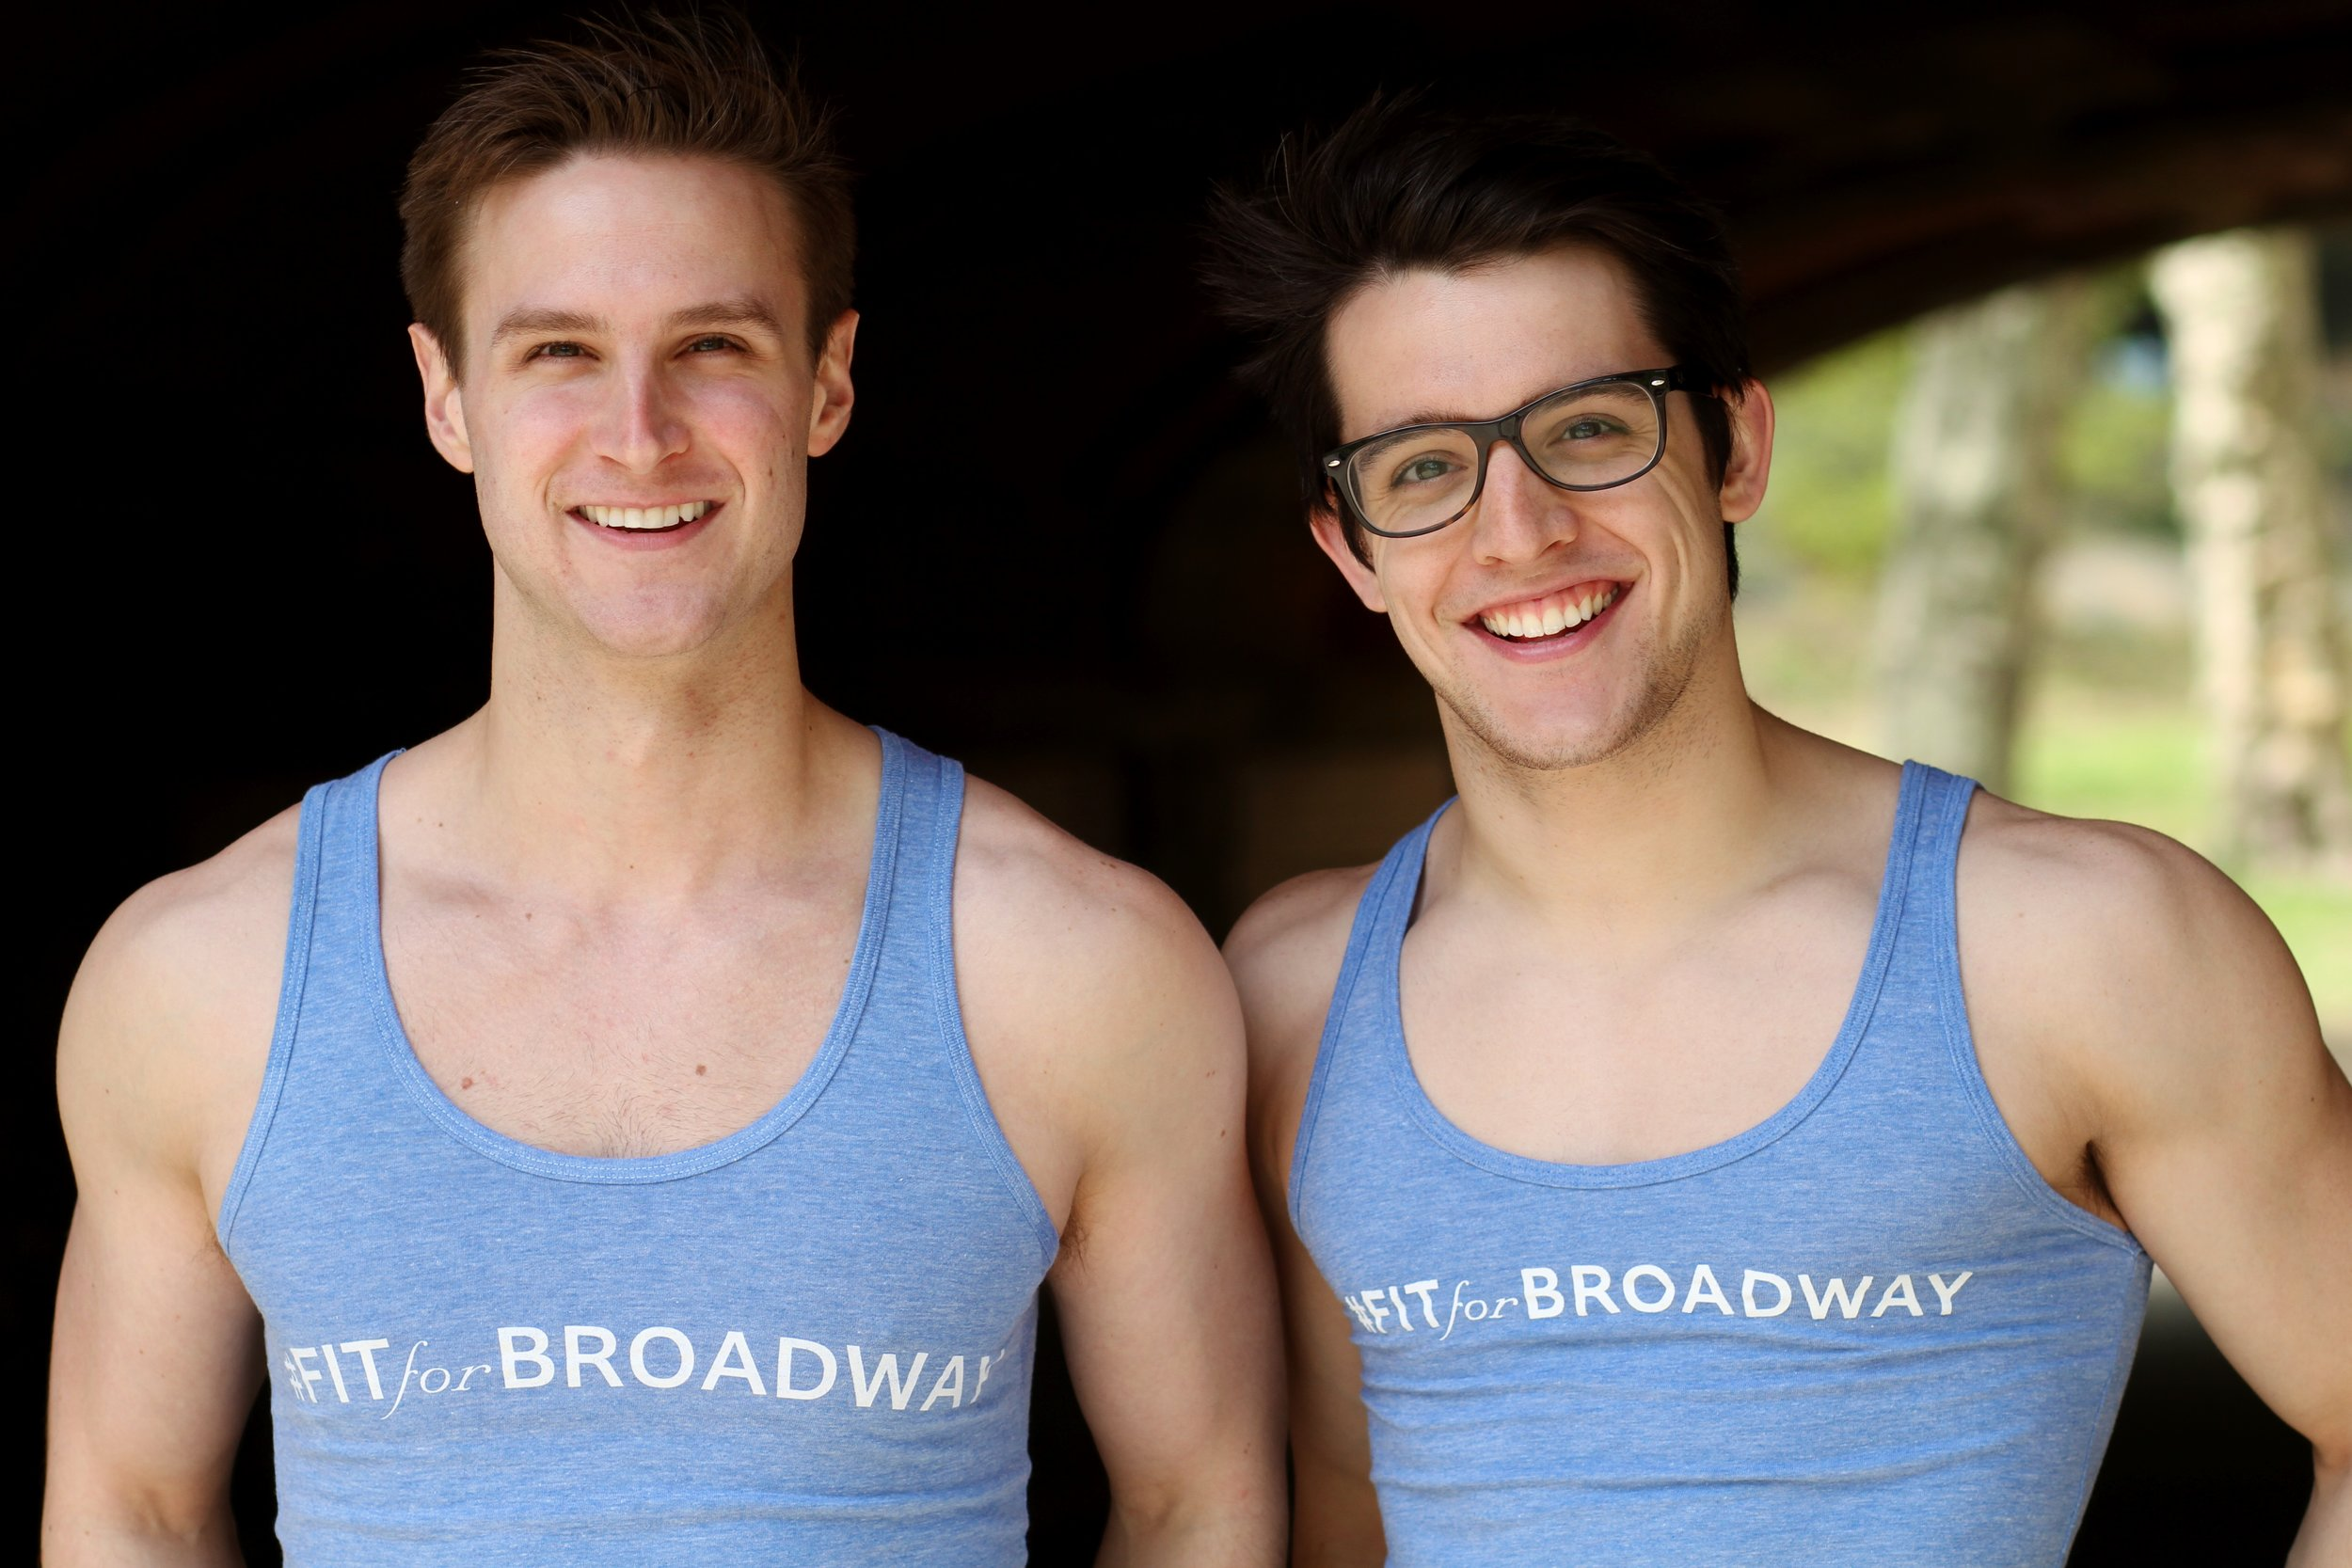 Clay-Thomson-Chris-Rice-Fit-for-broadway-6.jpg